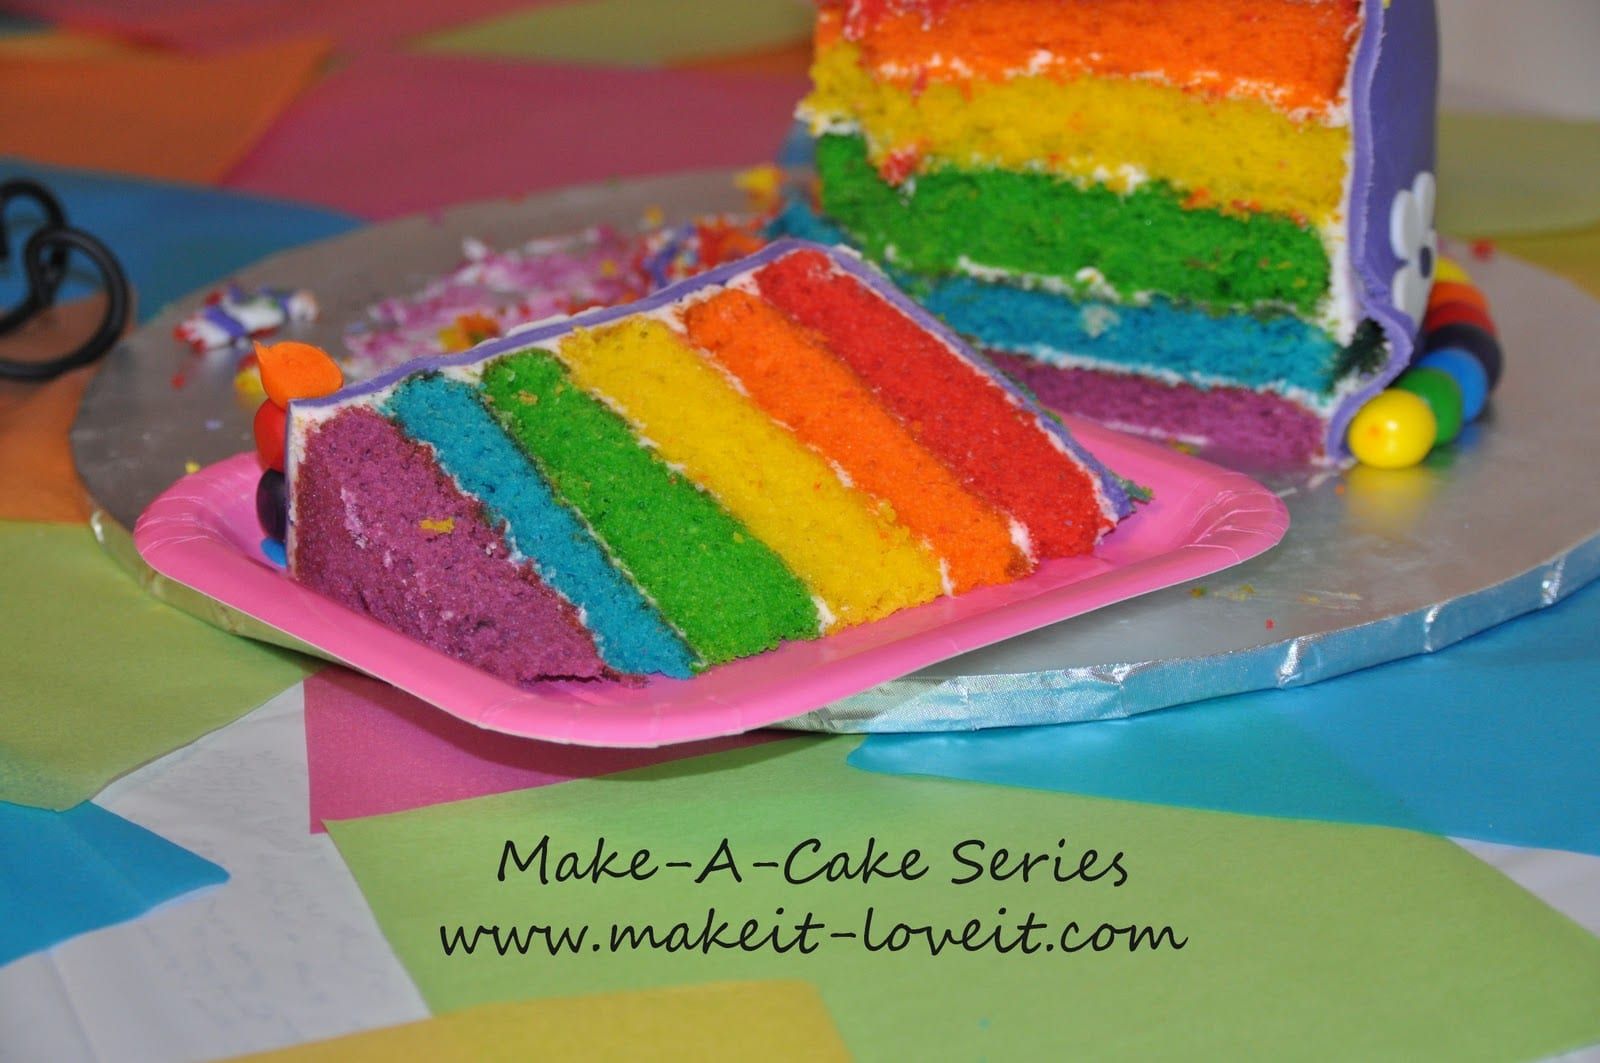 Make-a-Cake Series: 'My Little Pony' Cake and Rainbow Cookies